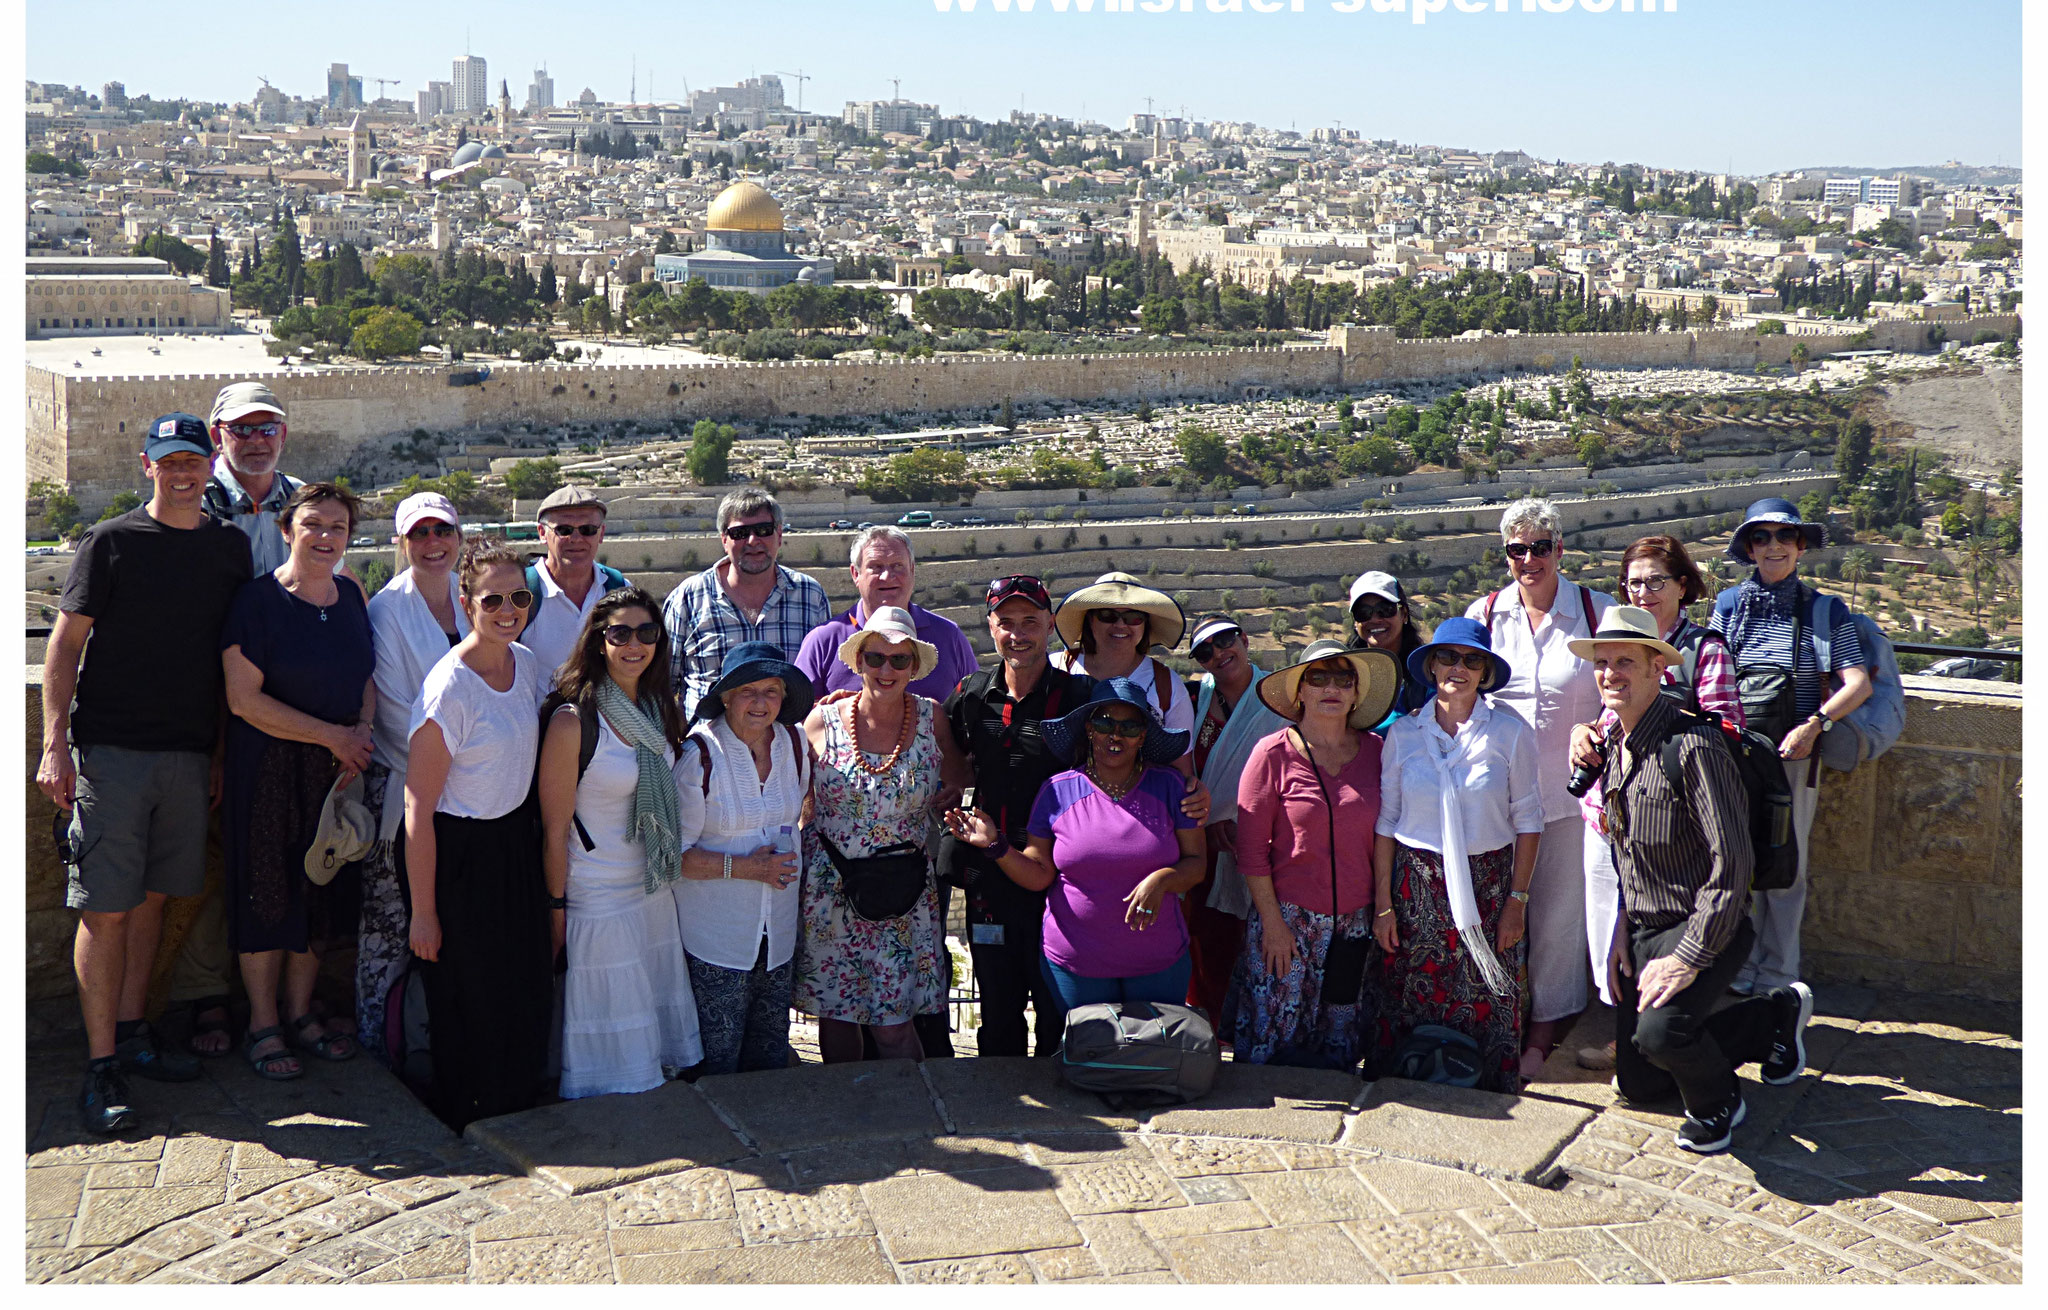 With the South African group on top of Mt. of Olives